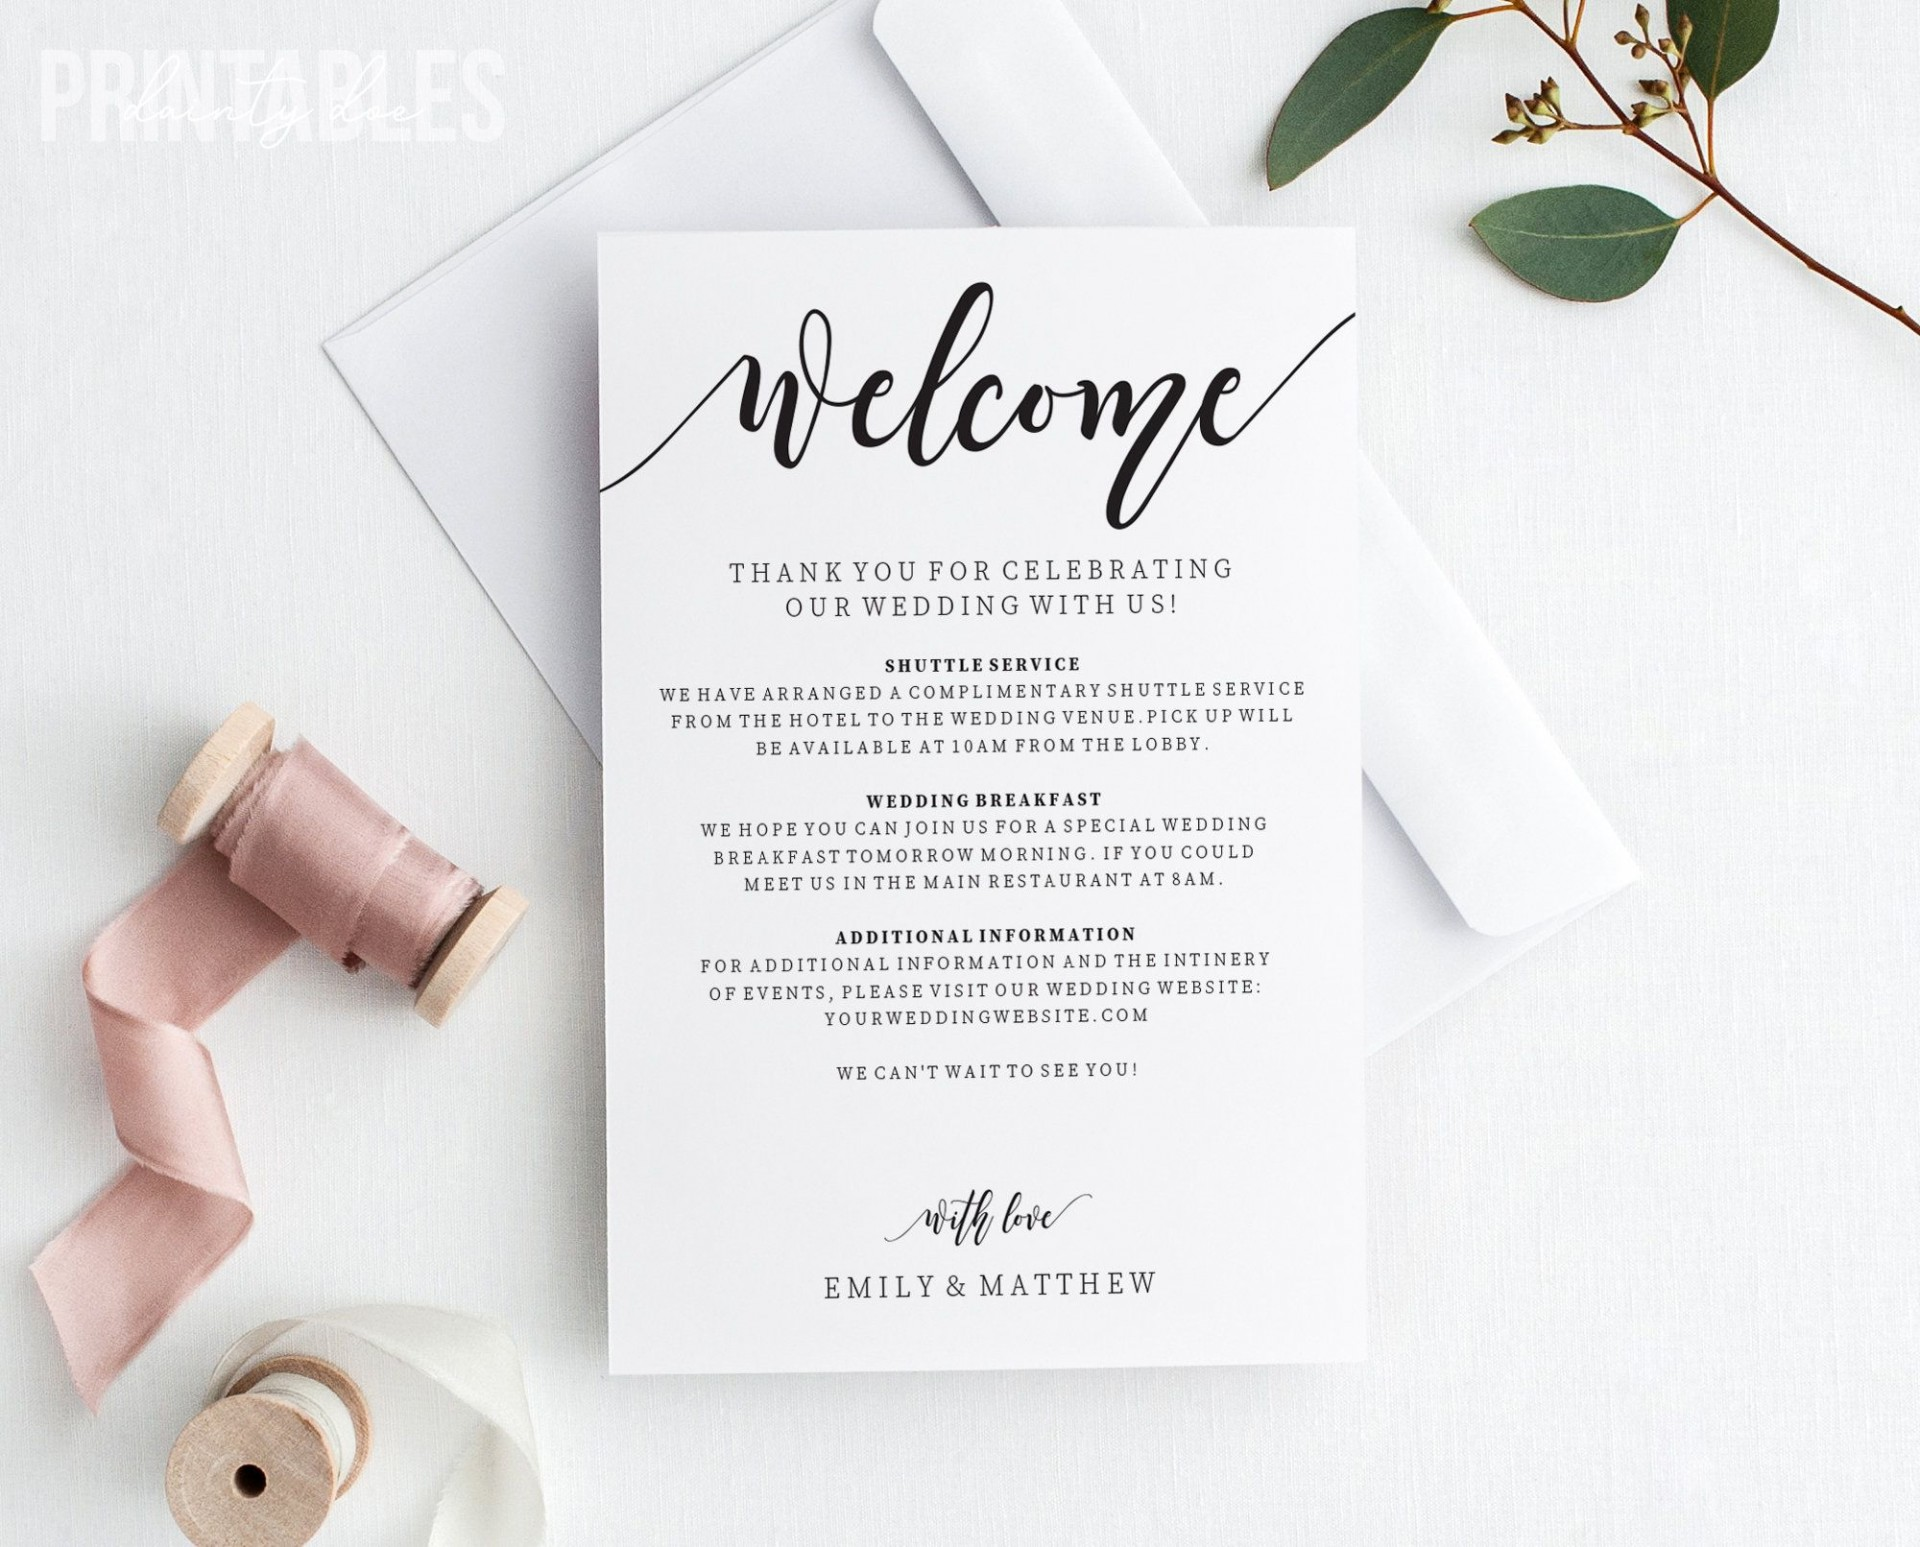 009 Wondrou Wedding Welcome Letter Template Word Inspiration 1920